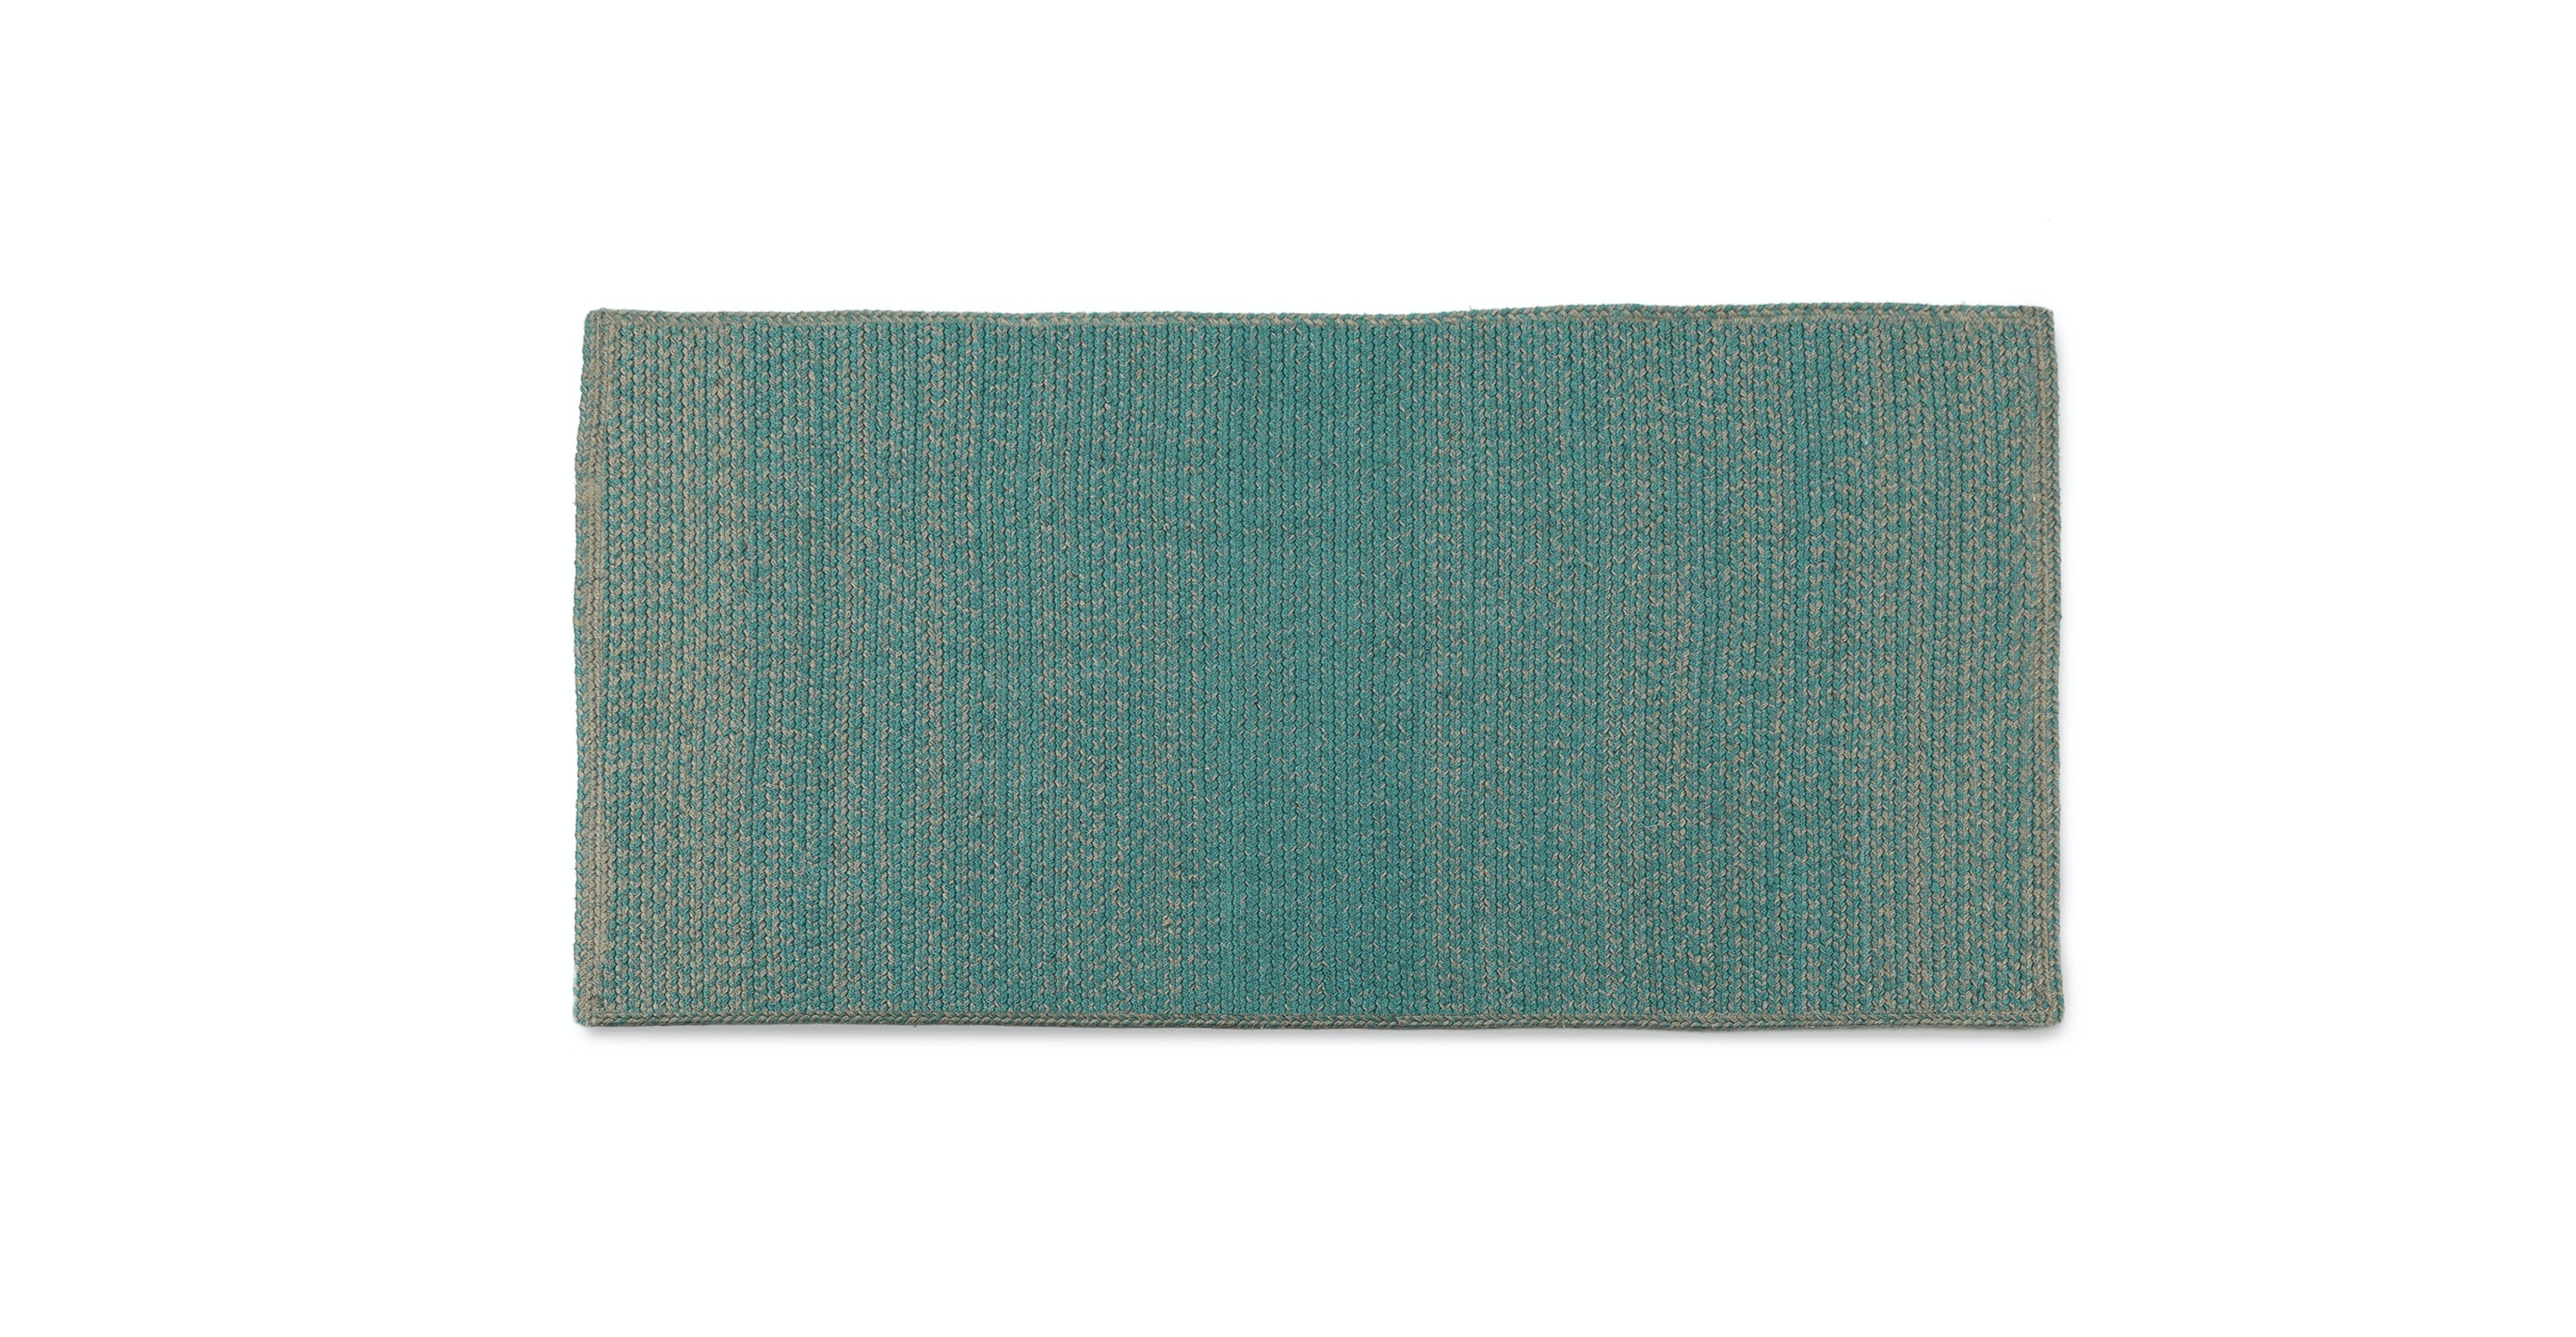 Stria Turquoise Gray Runner 2 5 X 5 Rugs Article